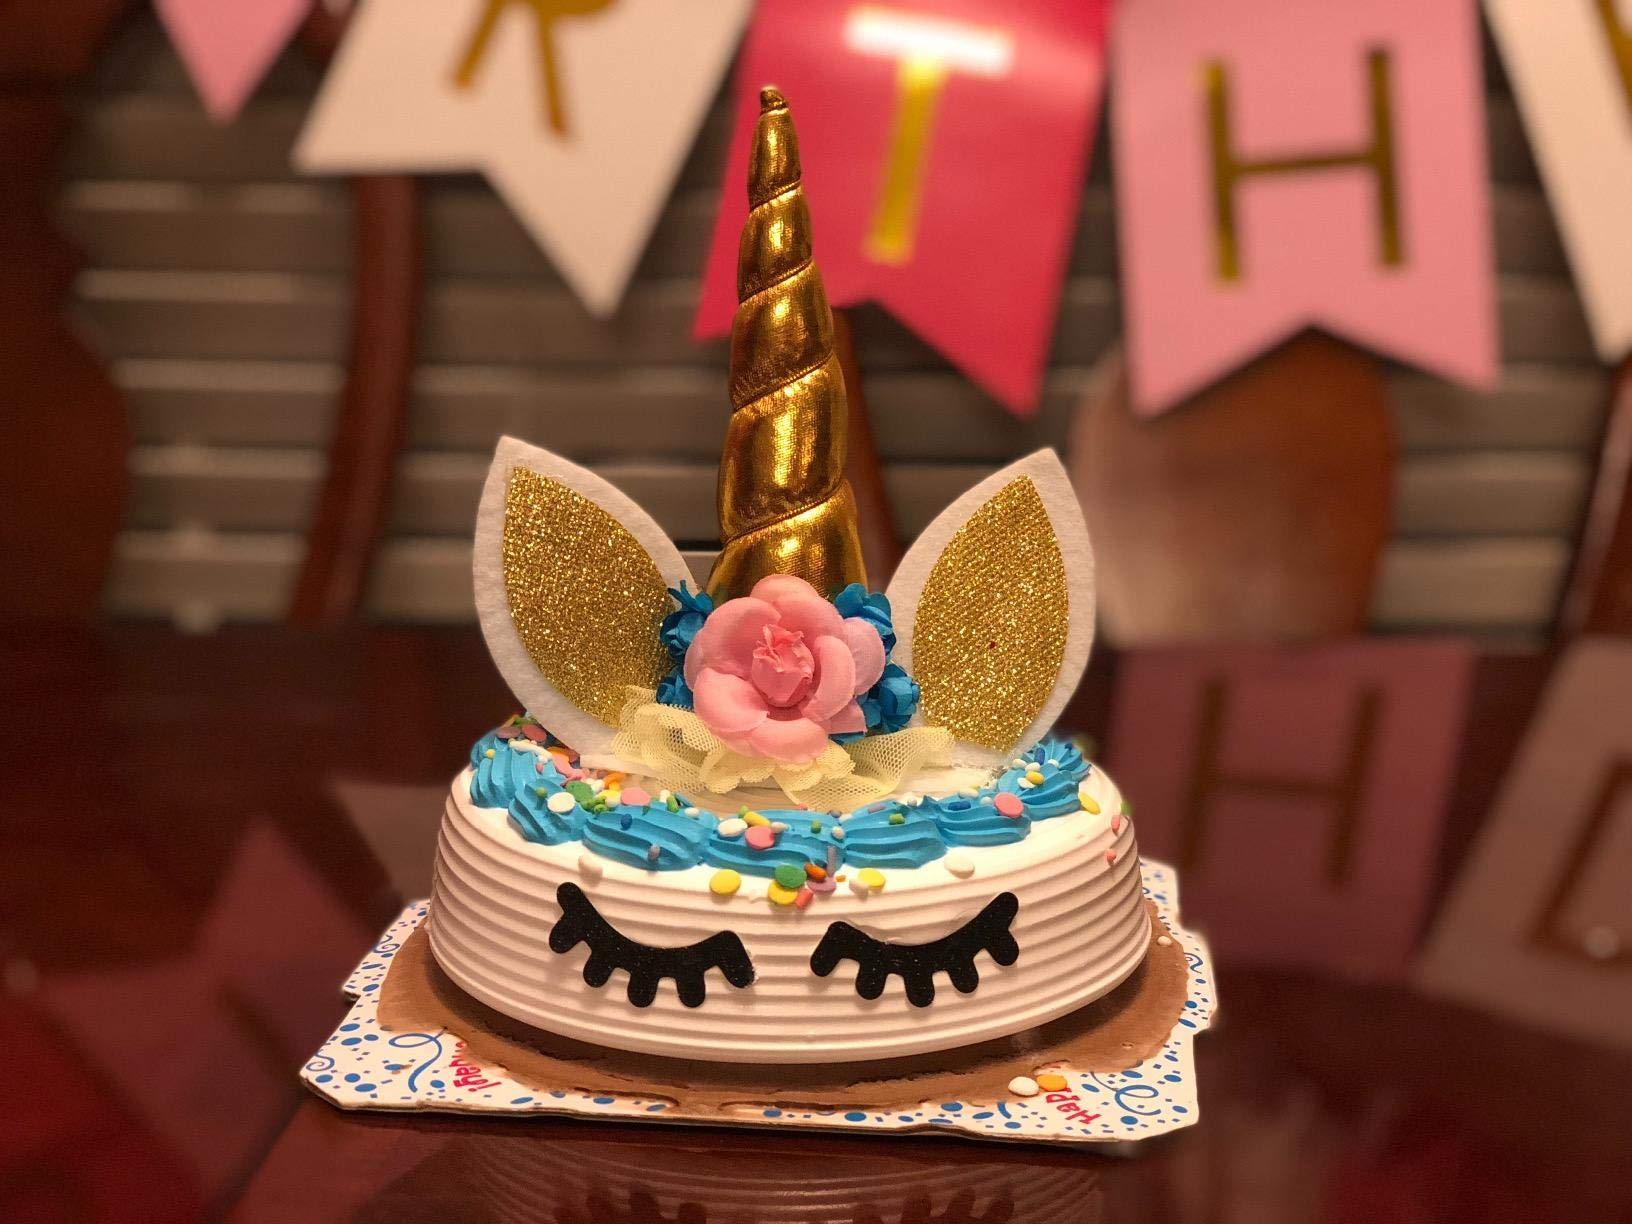 Palksky Handmade Gold Unicorn Birthday Cake Toppers Set. Unicorn Horn, Ears and Flowers Set. Unicorn Party Decoration for Baby Shower,Wedding and Birthday Party 10